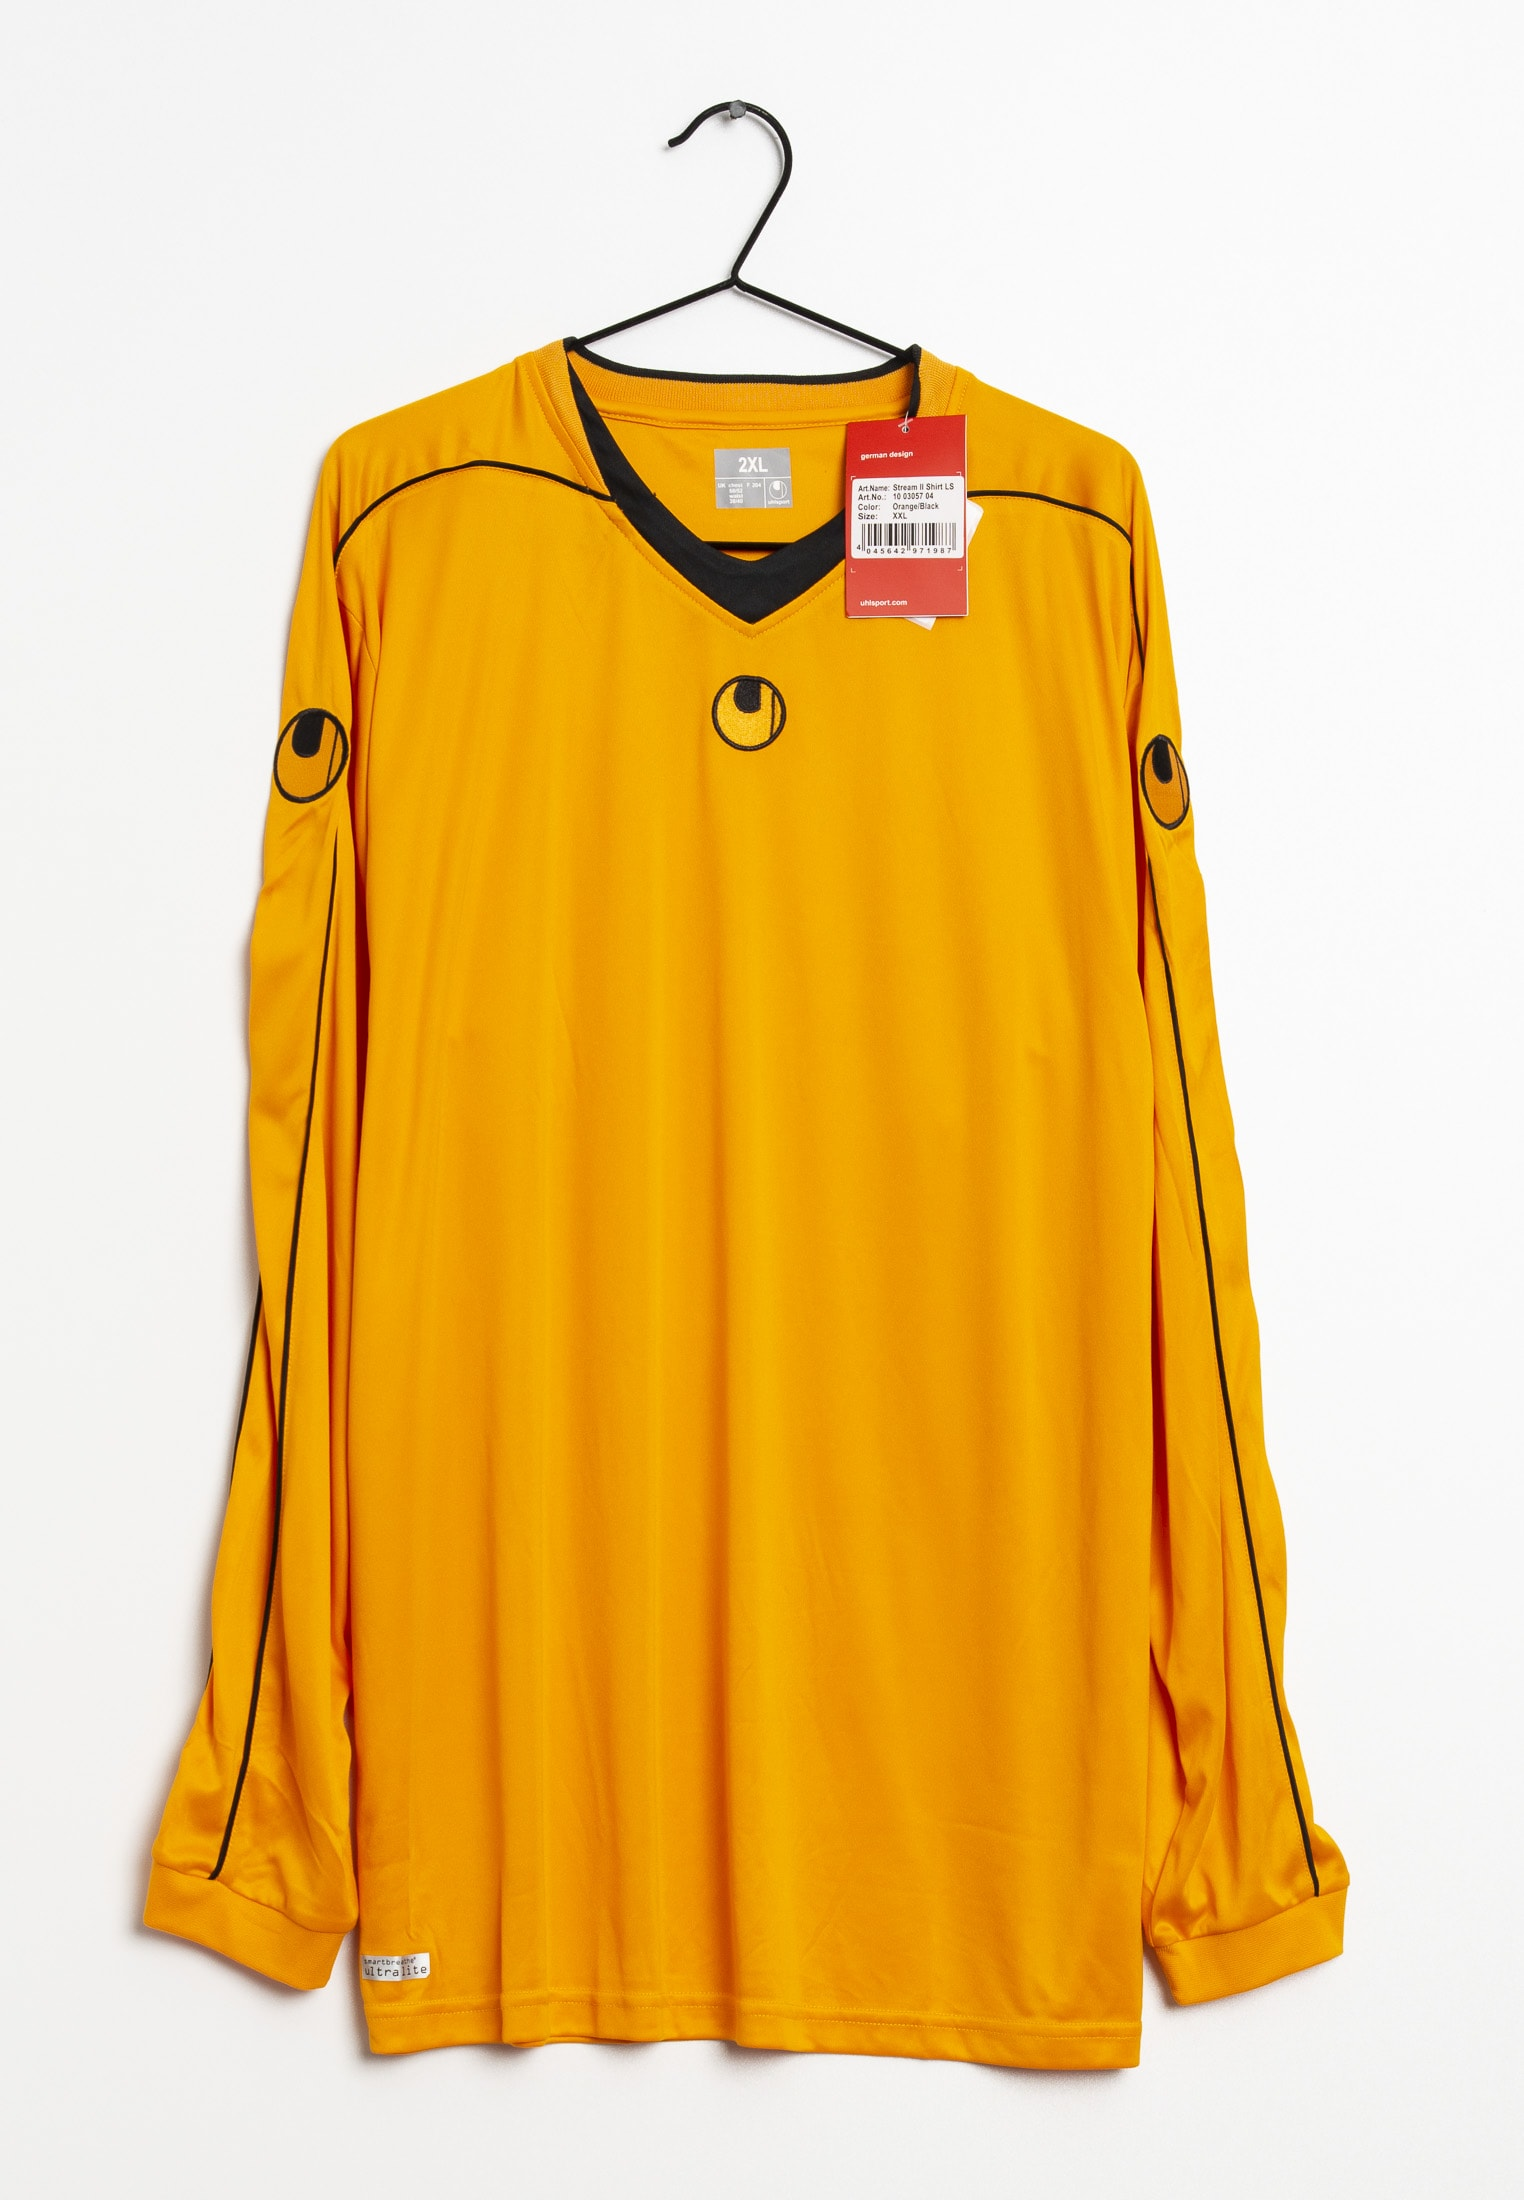 Uhlsport Langarmshirt orange Gr.XXL